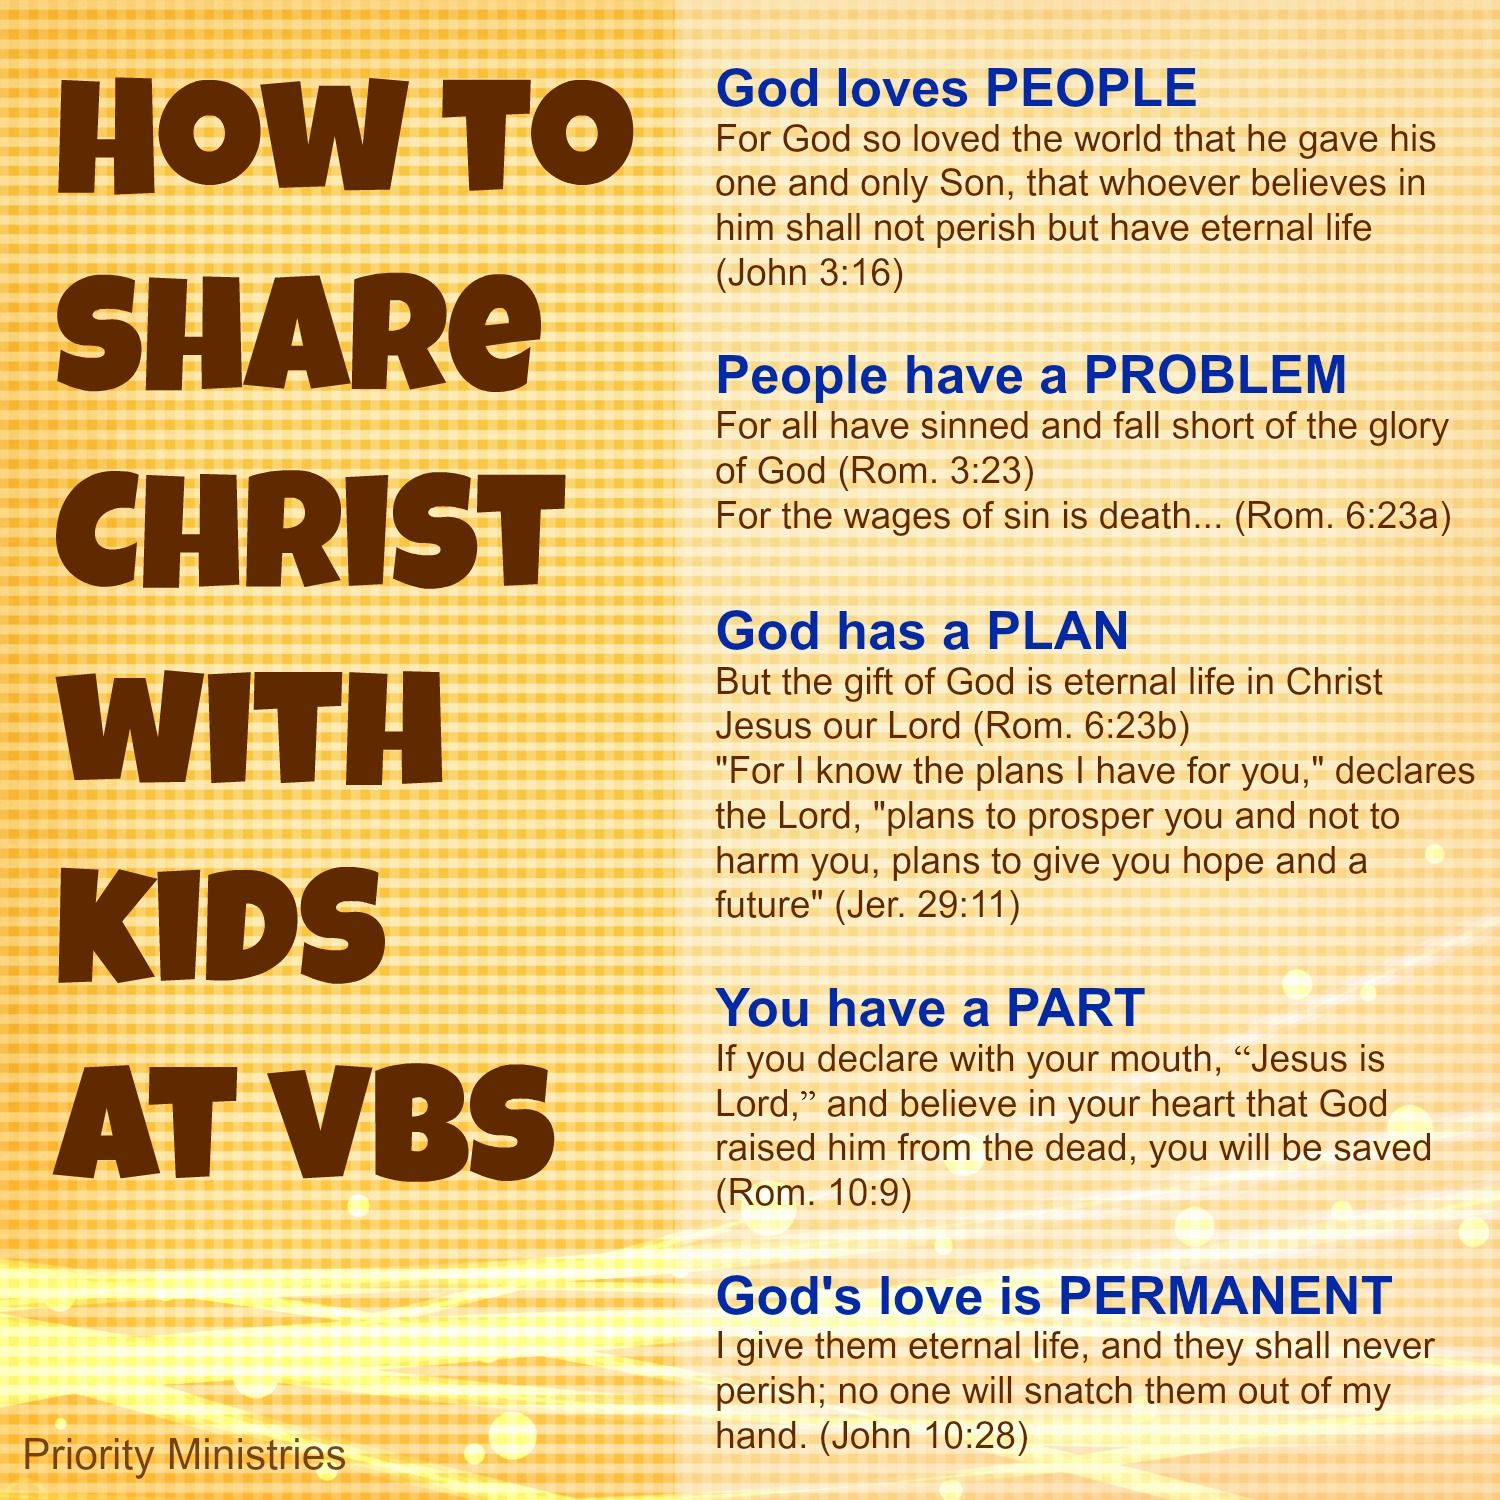 how to share christ with kids at vacation bible this would